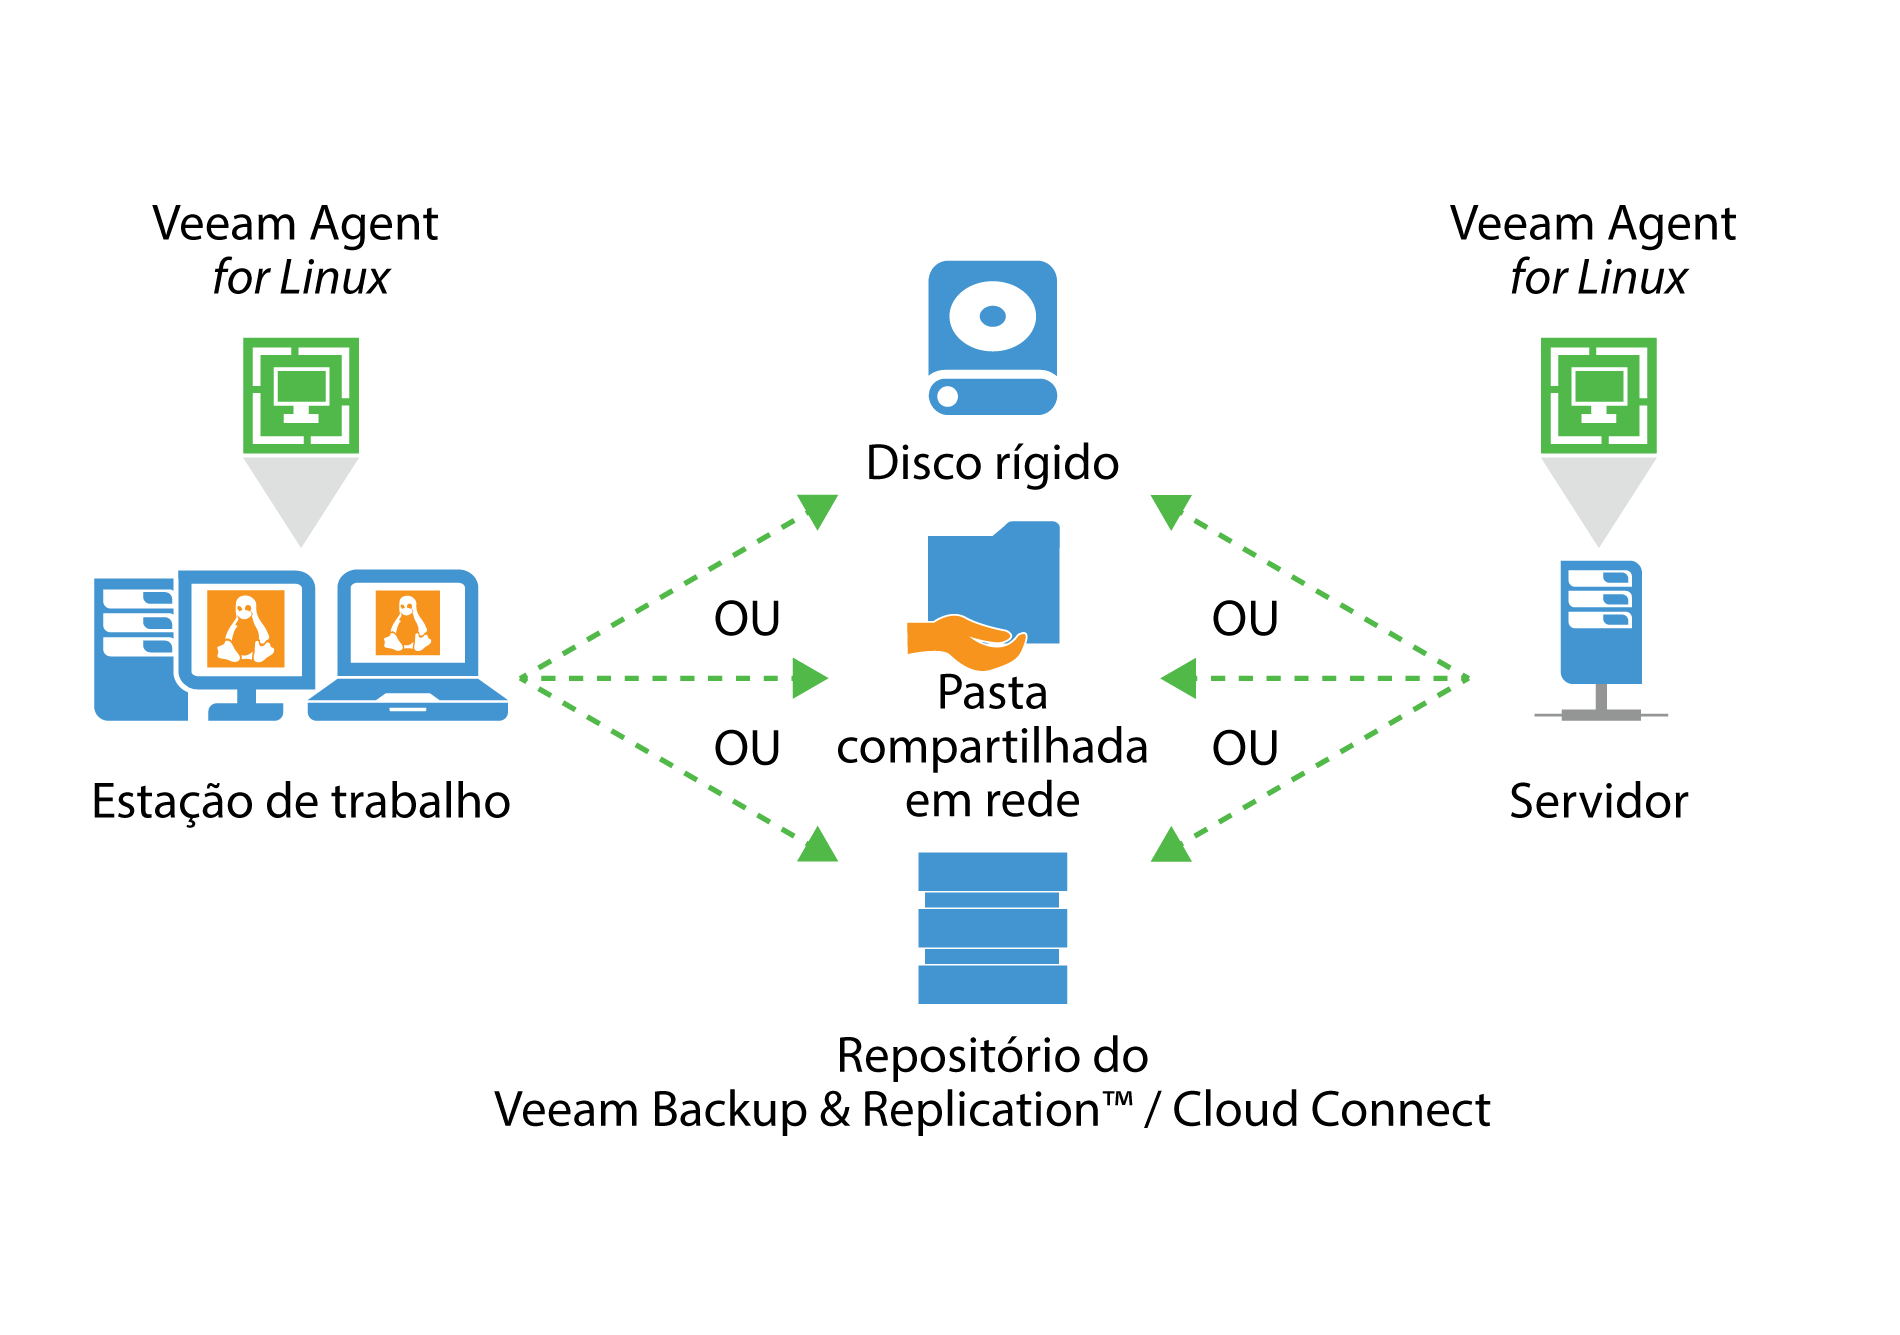 veeam_endpoint_how_it_works_for_linux_br.png